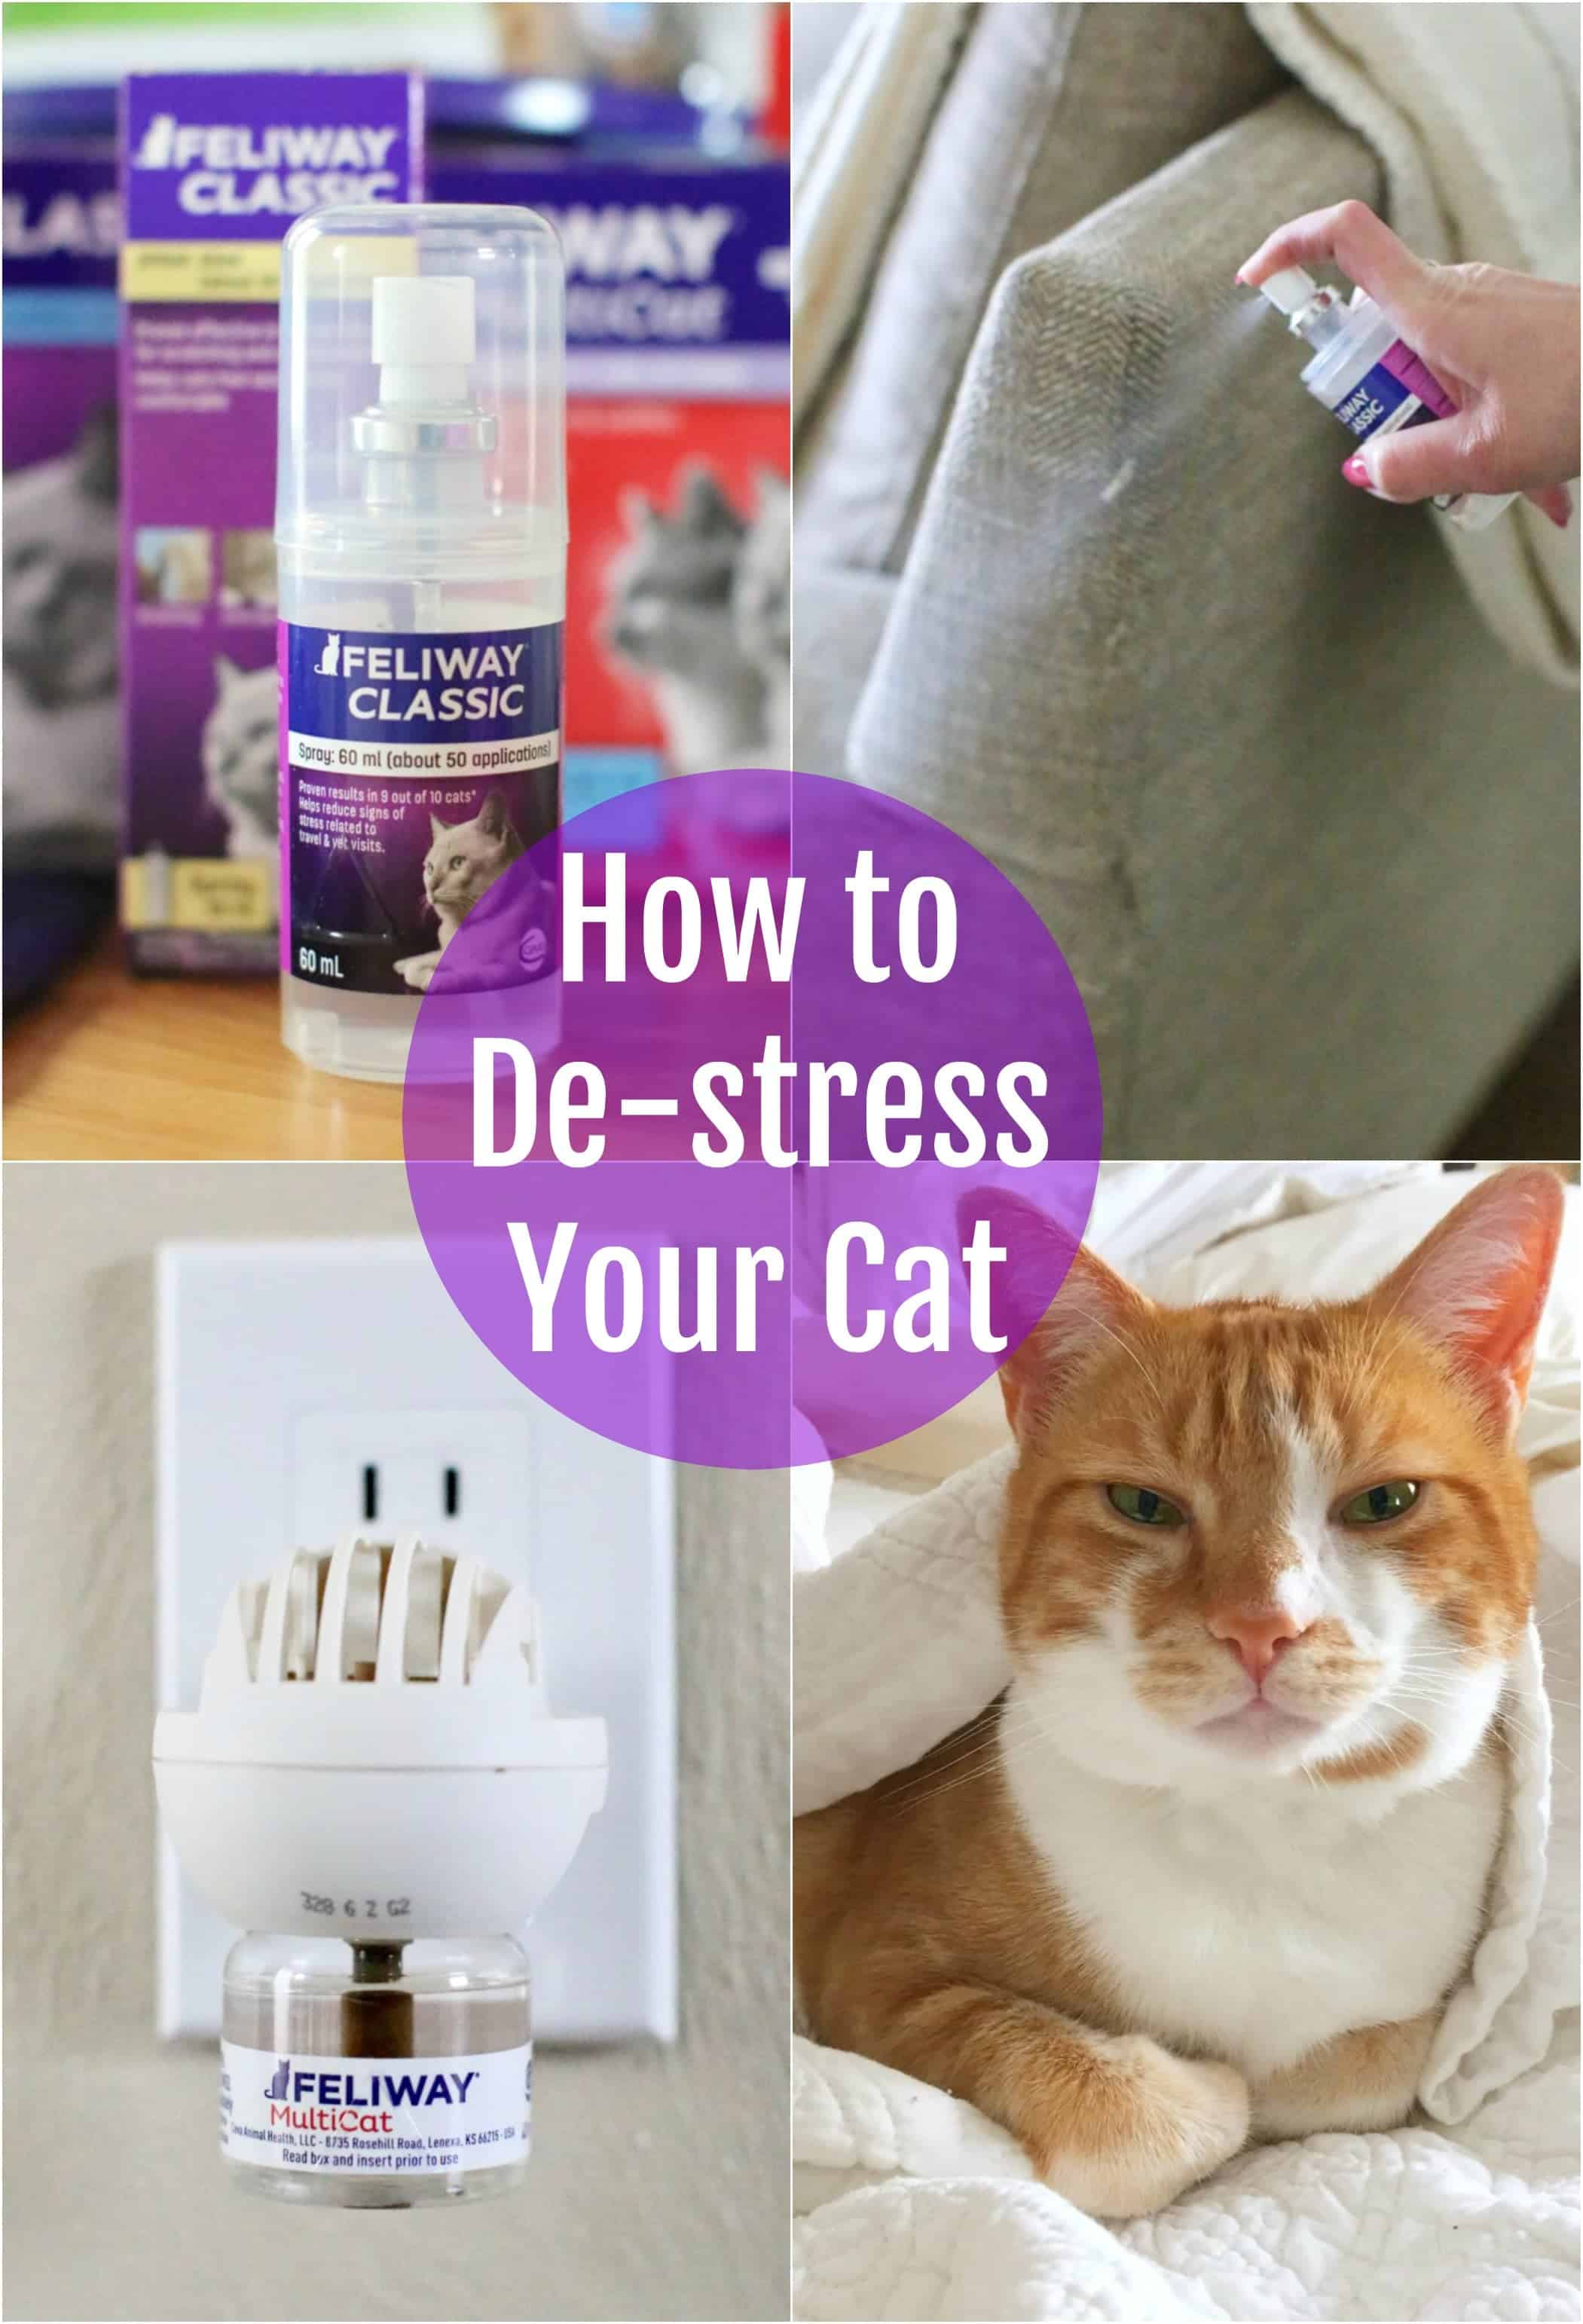 How to: De-stress your cat naturally and safely. #cats #cat #howto #relax #scratching #biting #spraying #training #natural #pets